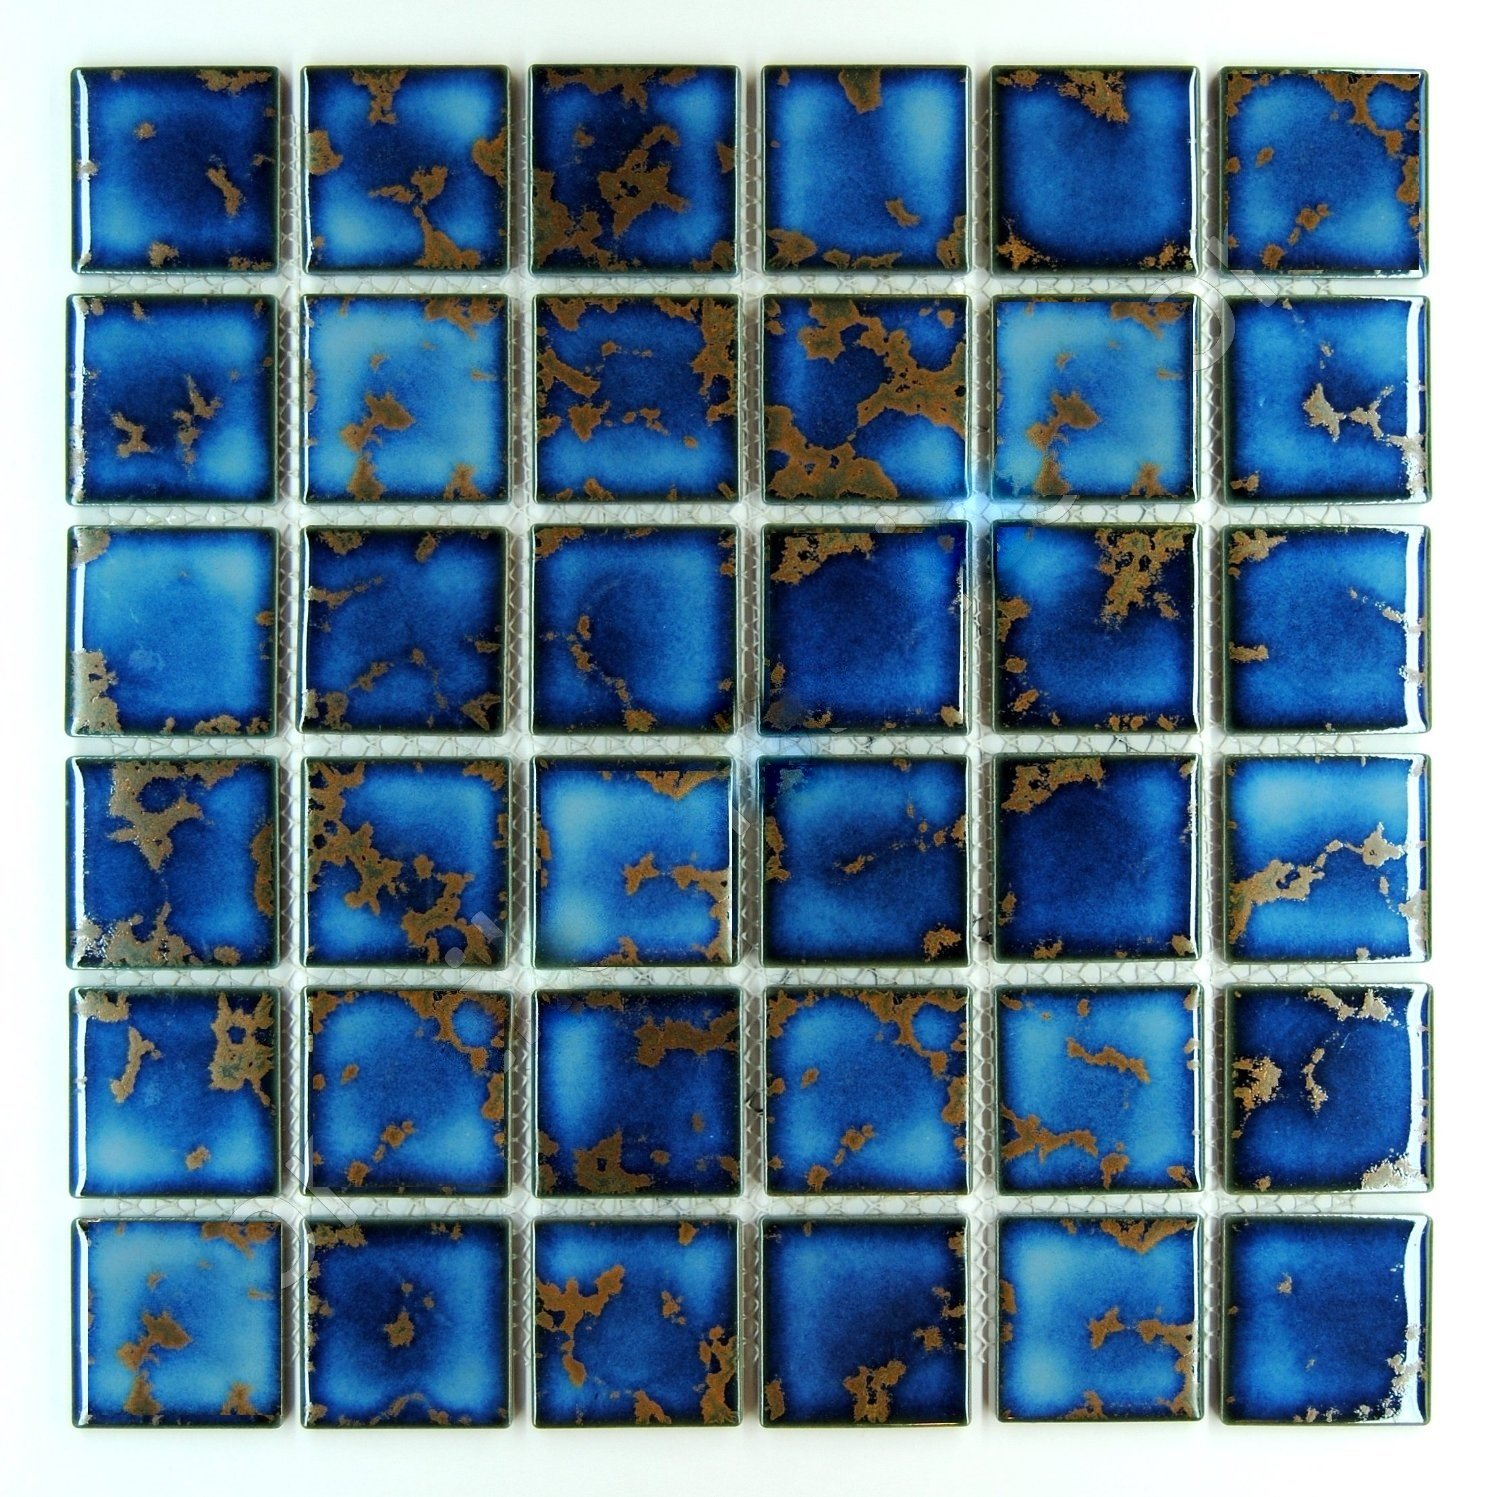 Vogue Premium Quality Square Blue Calacatta Porcelain Mosaic Glossy Tile for Bathroom Floors, Walls and Kitchen Backsplashes, Pool Tile Designed in Italy (12''x12'' - 1 Square Foot) by Marble 'n things